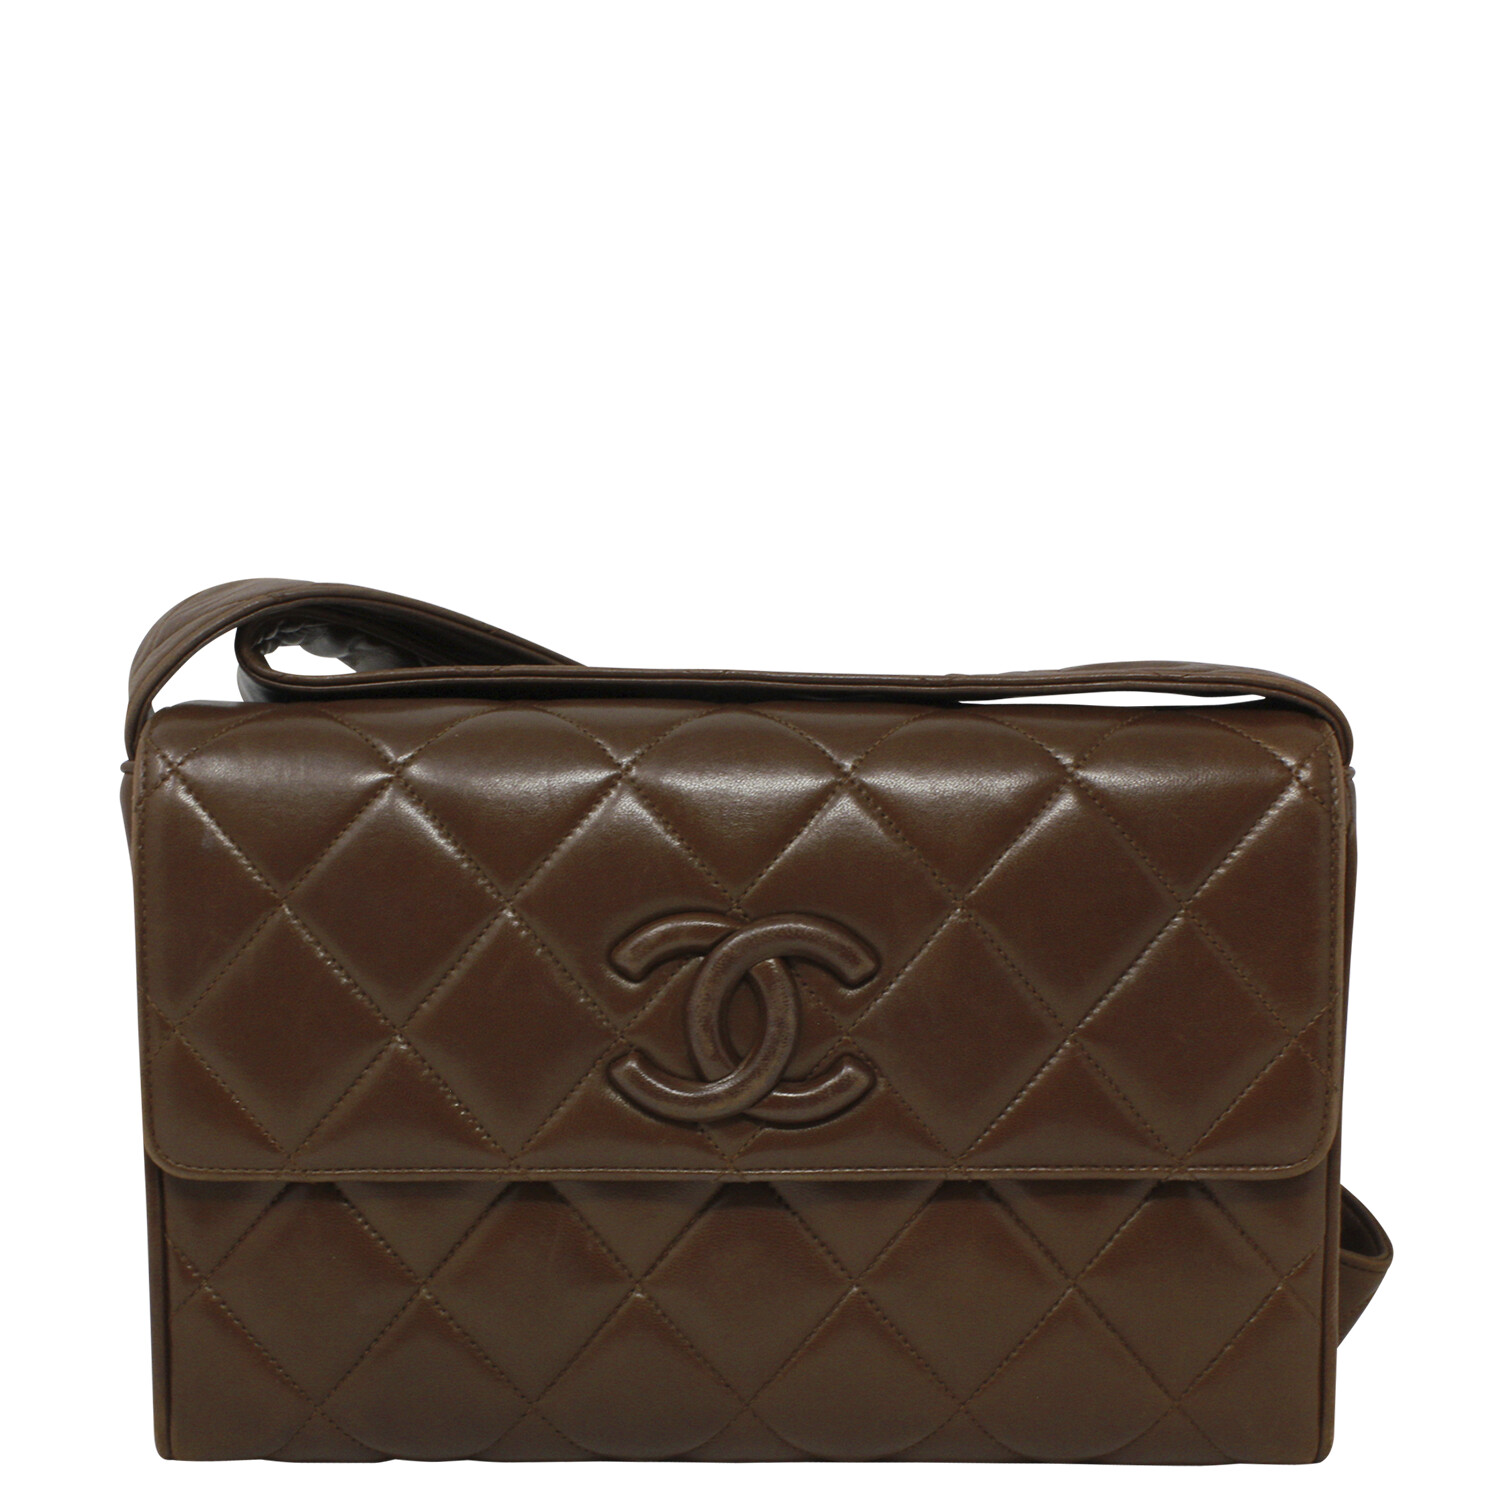 Chanel 90s Paris Brown Quilted Crossbody Bag